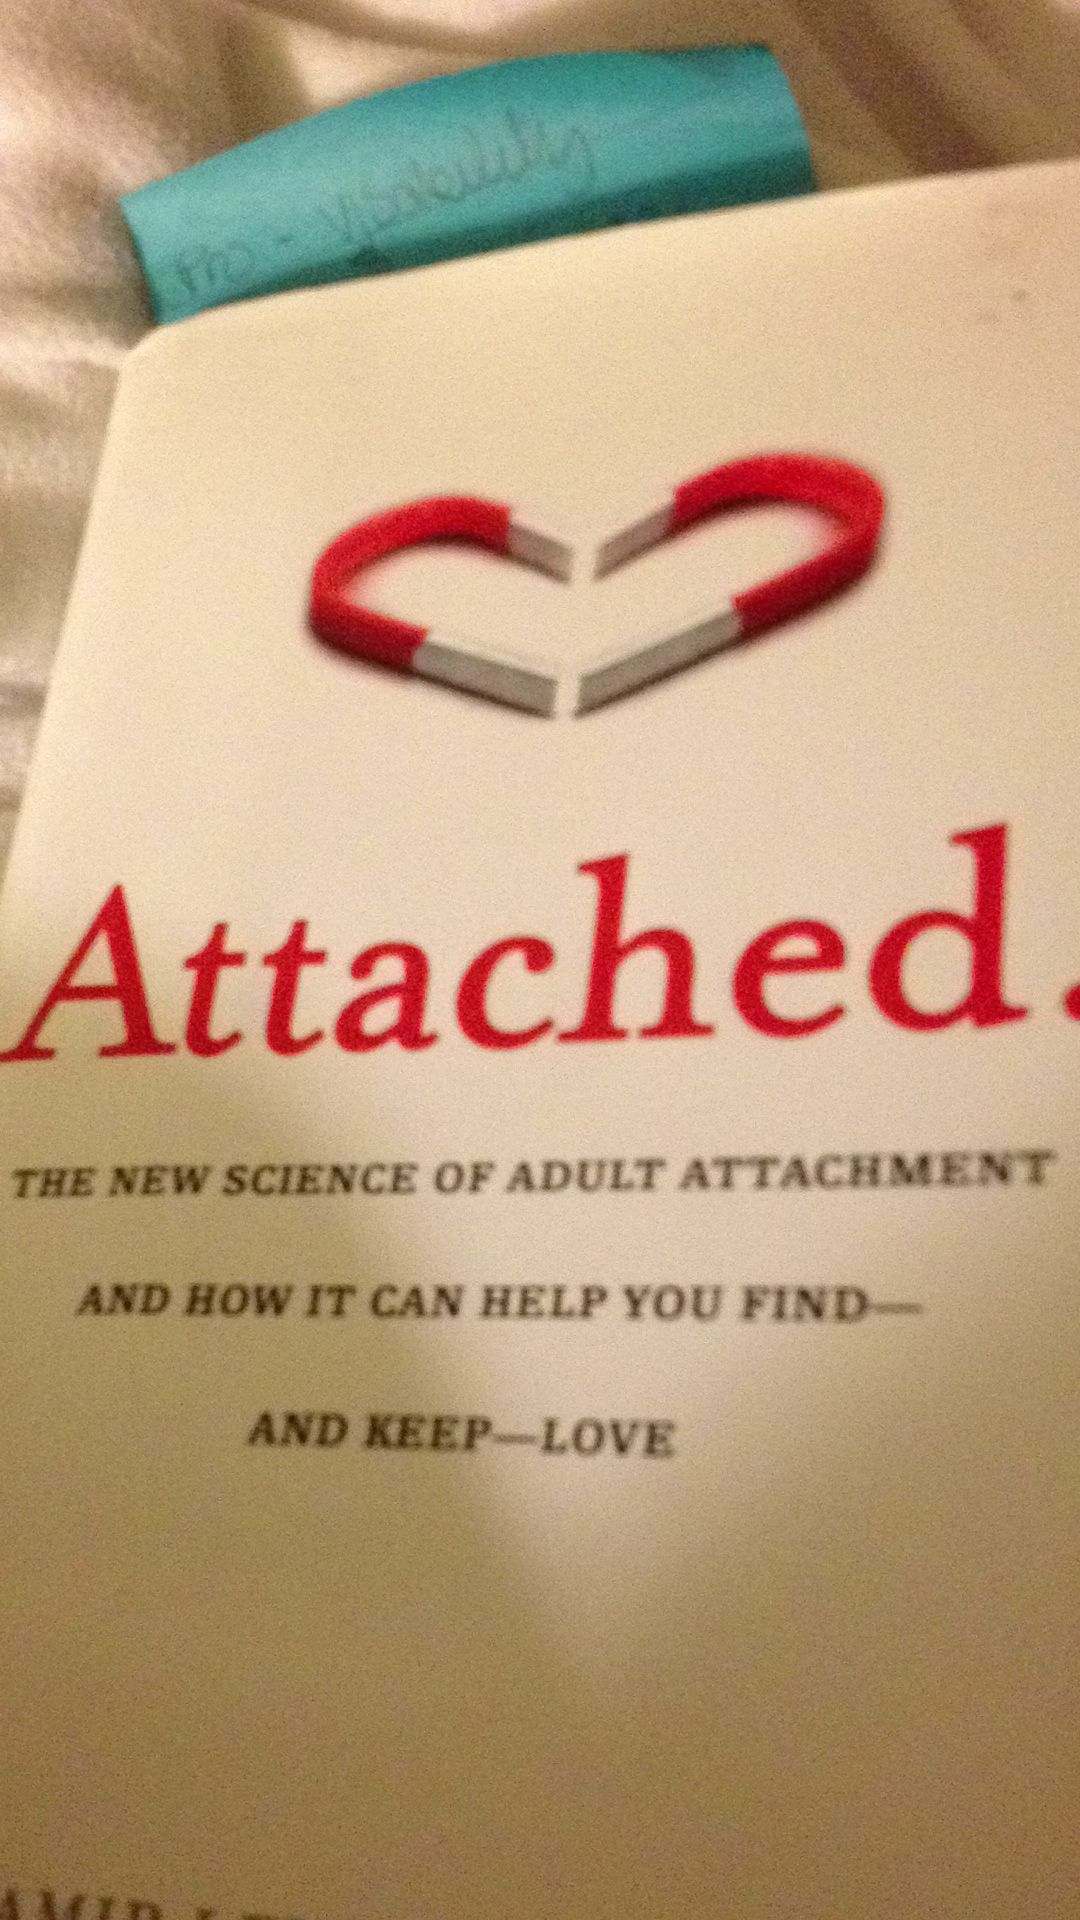 Fascinating Book On How Adult Attachment Styles Can Be